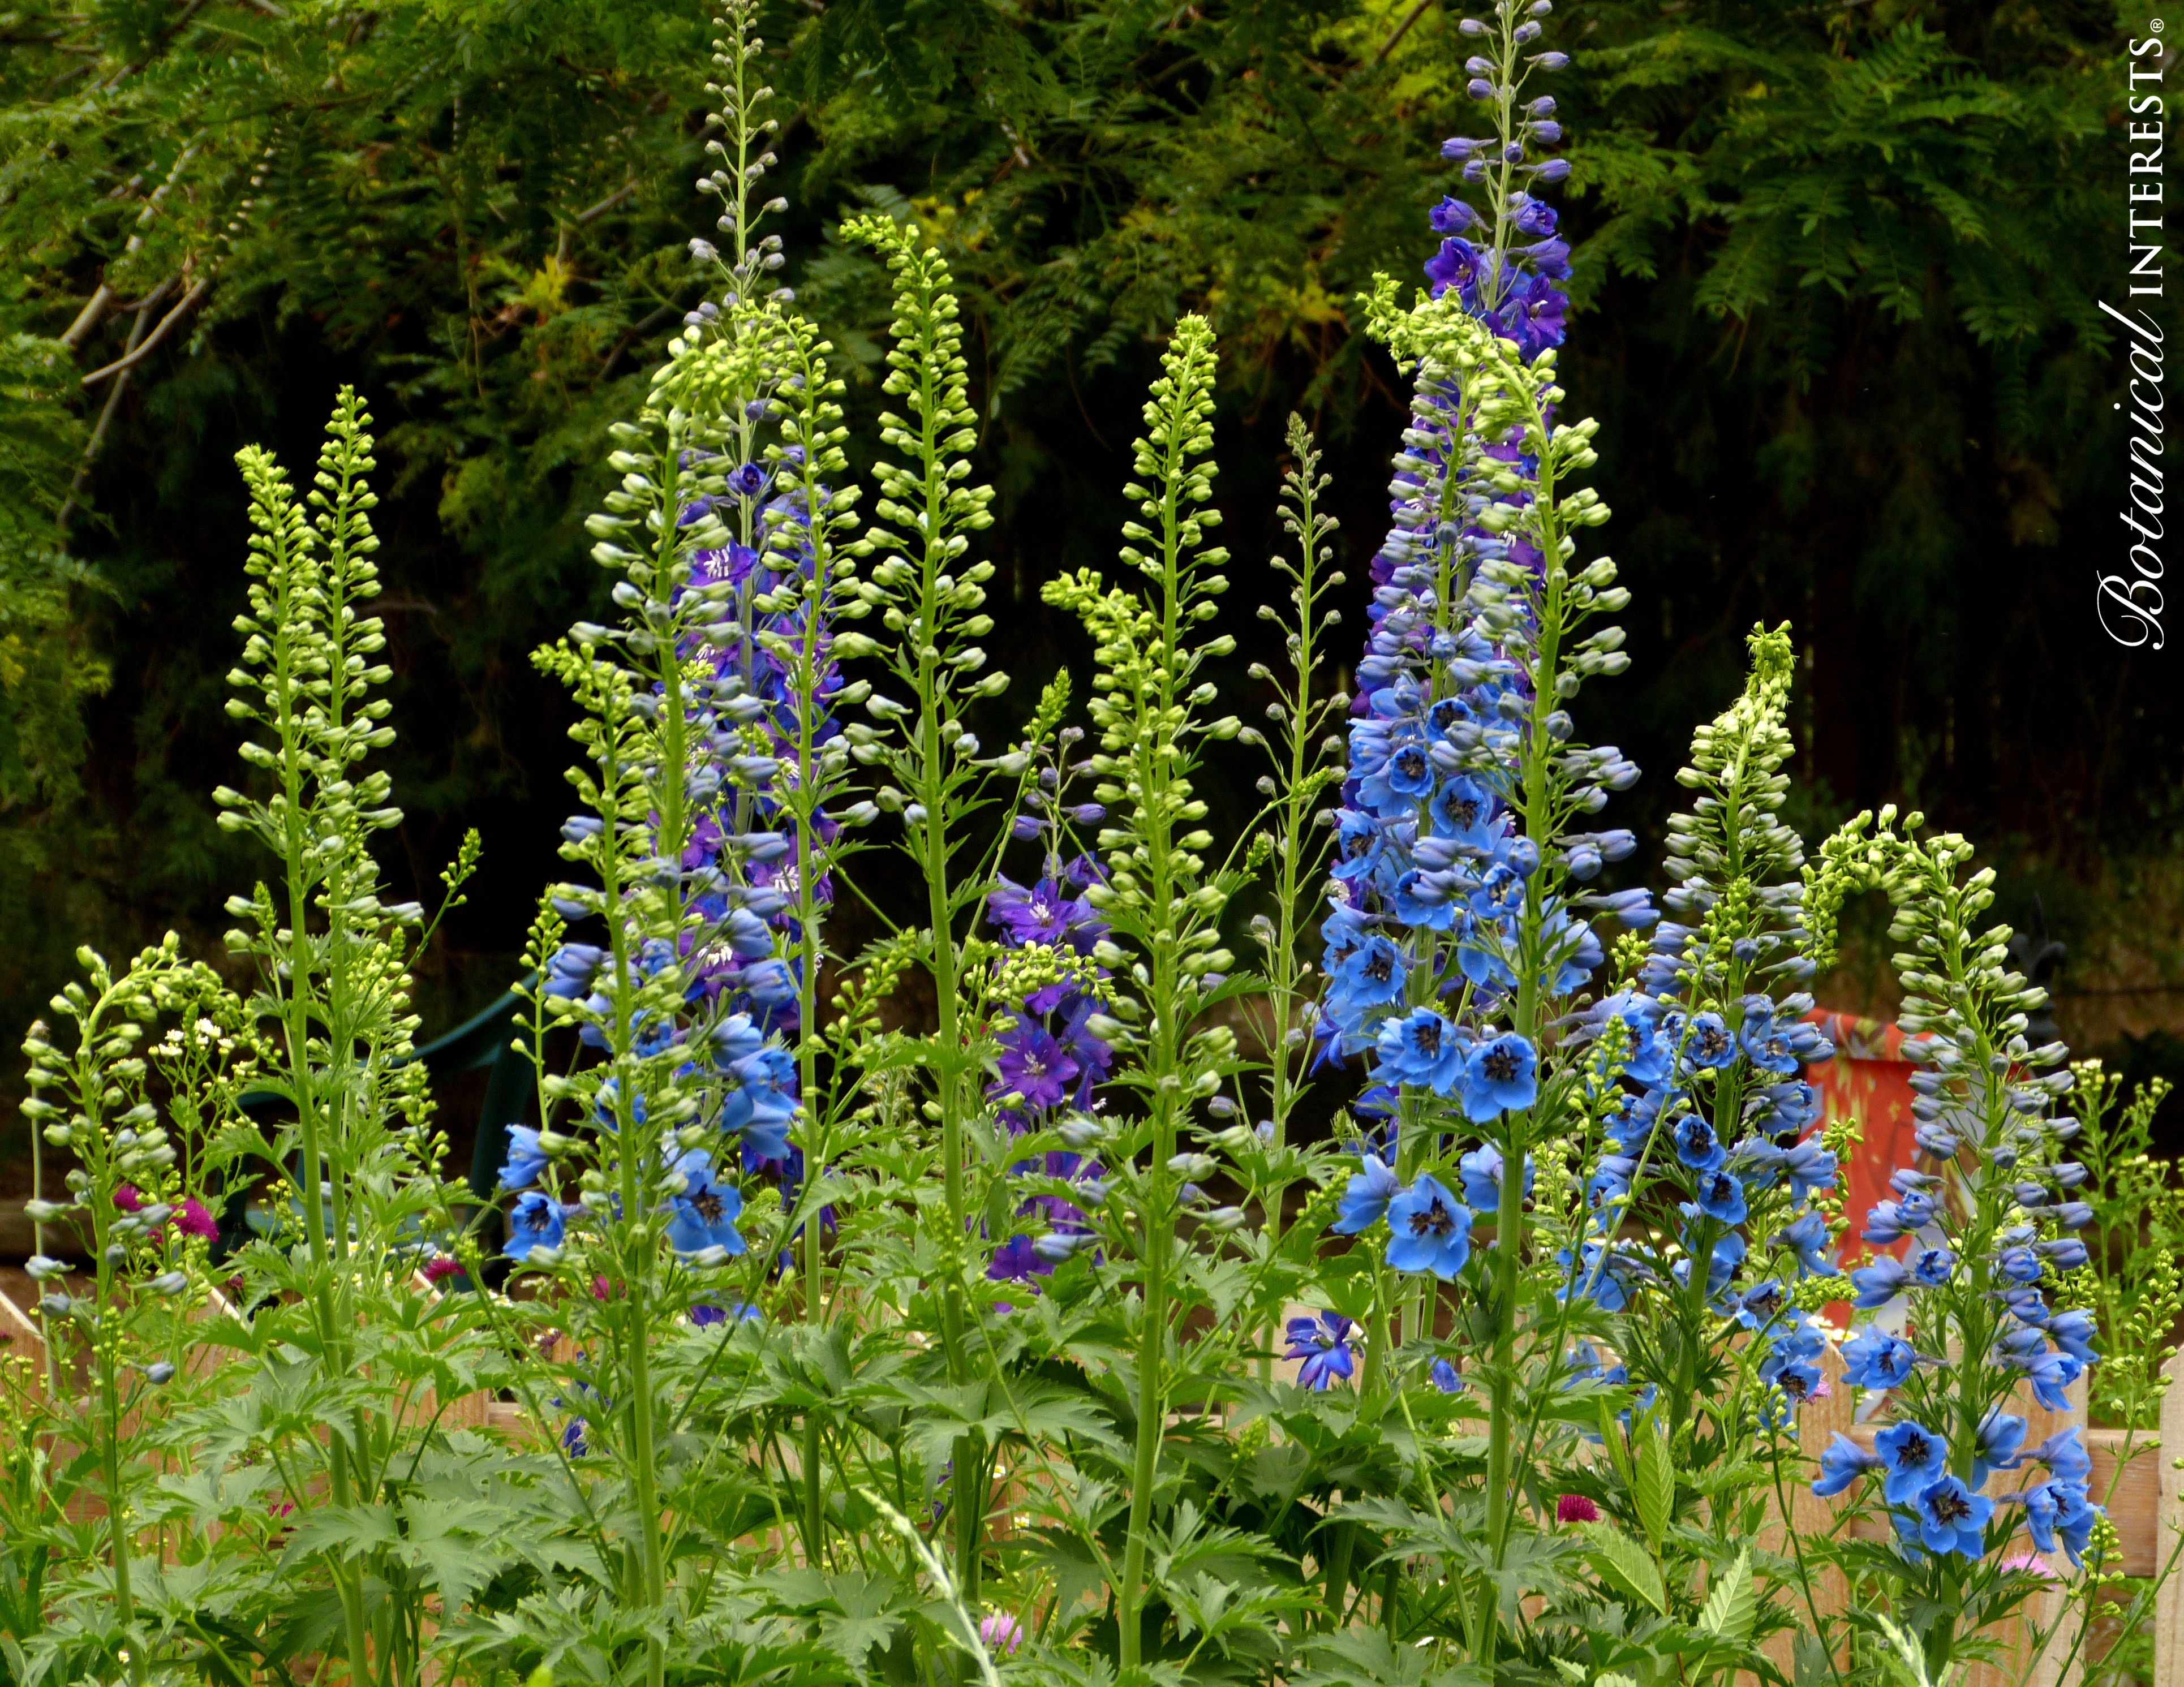 """The National Garden Bureau is calling 2016 """"The Year of the Delphinium"""", and I agree. Delphiniums bring coveted blues, deep purples, pinks and whites to the garden, not to mention they are pollinator magnets. Read more: http://www.botanicalinterests.com/biblog/category/in-the-garden/"""